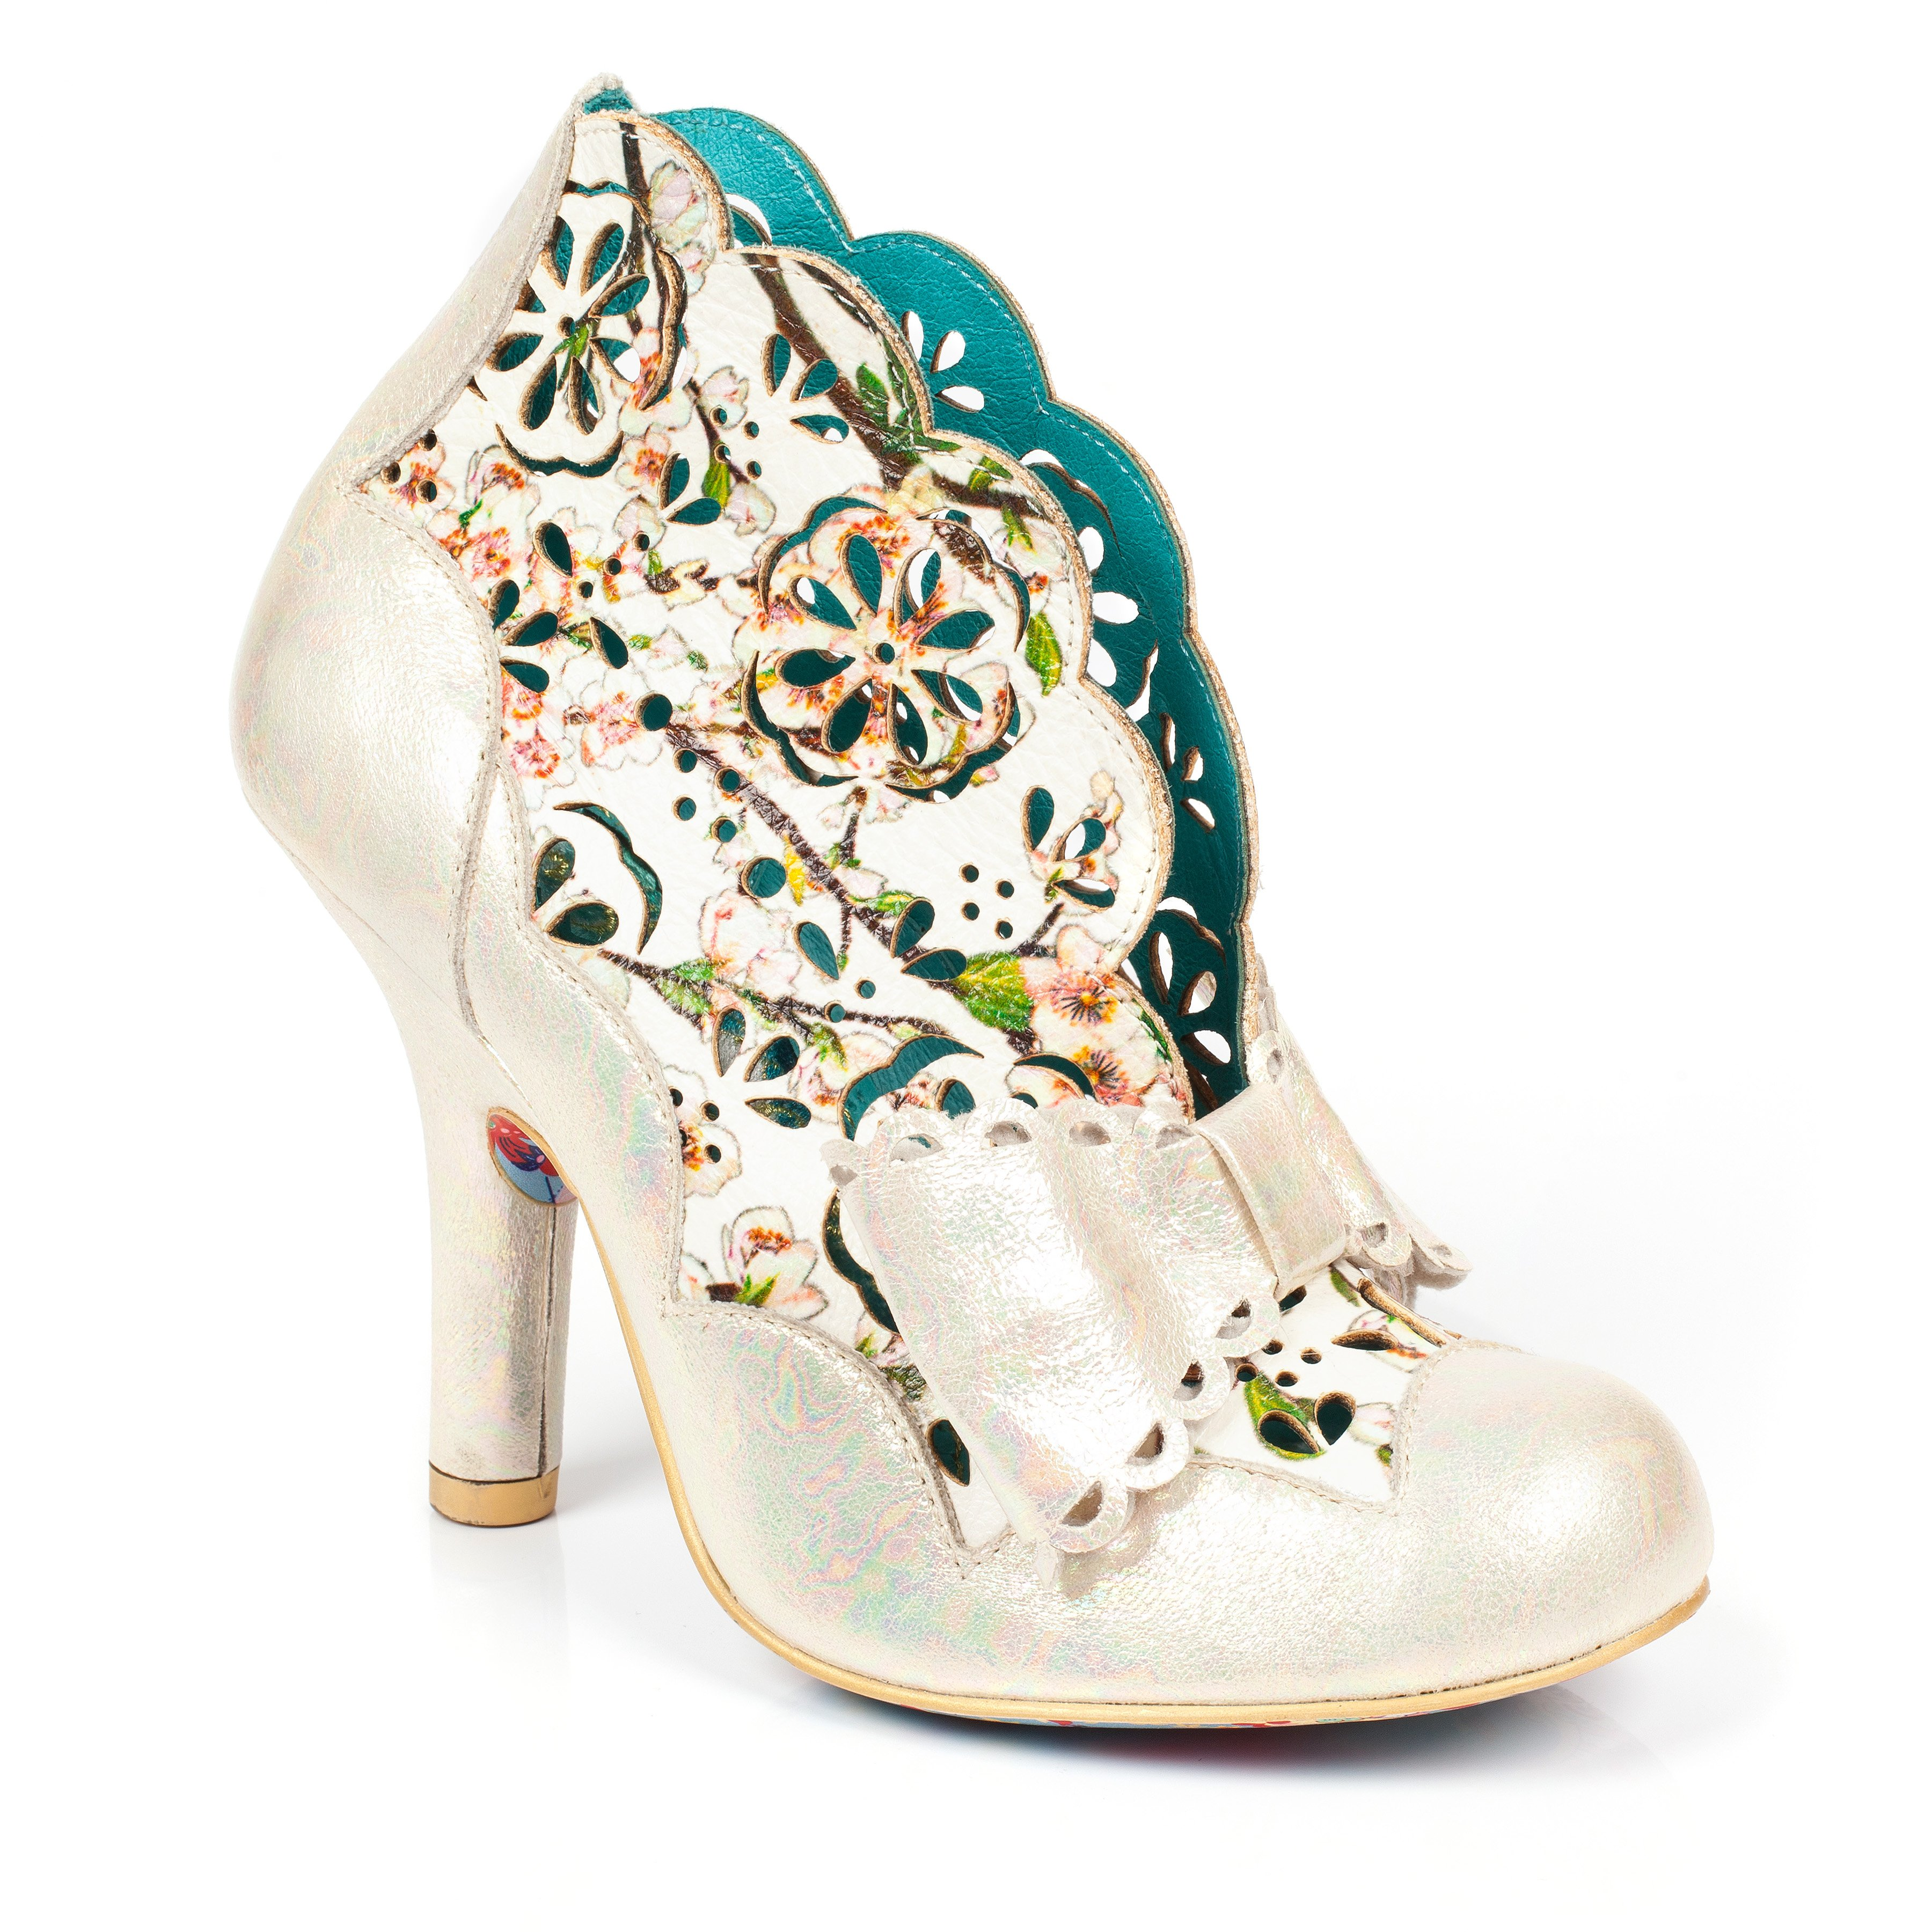 Quirky Wedding Shoes - Match Your Theme | CHWV